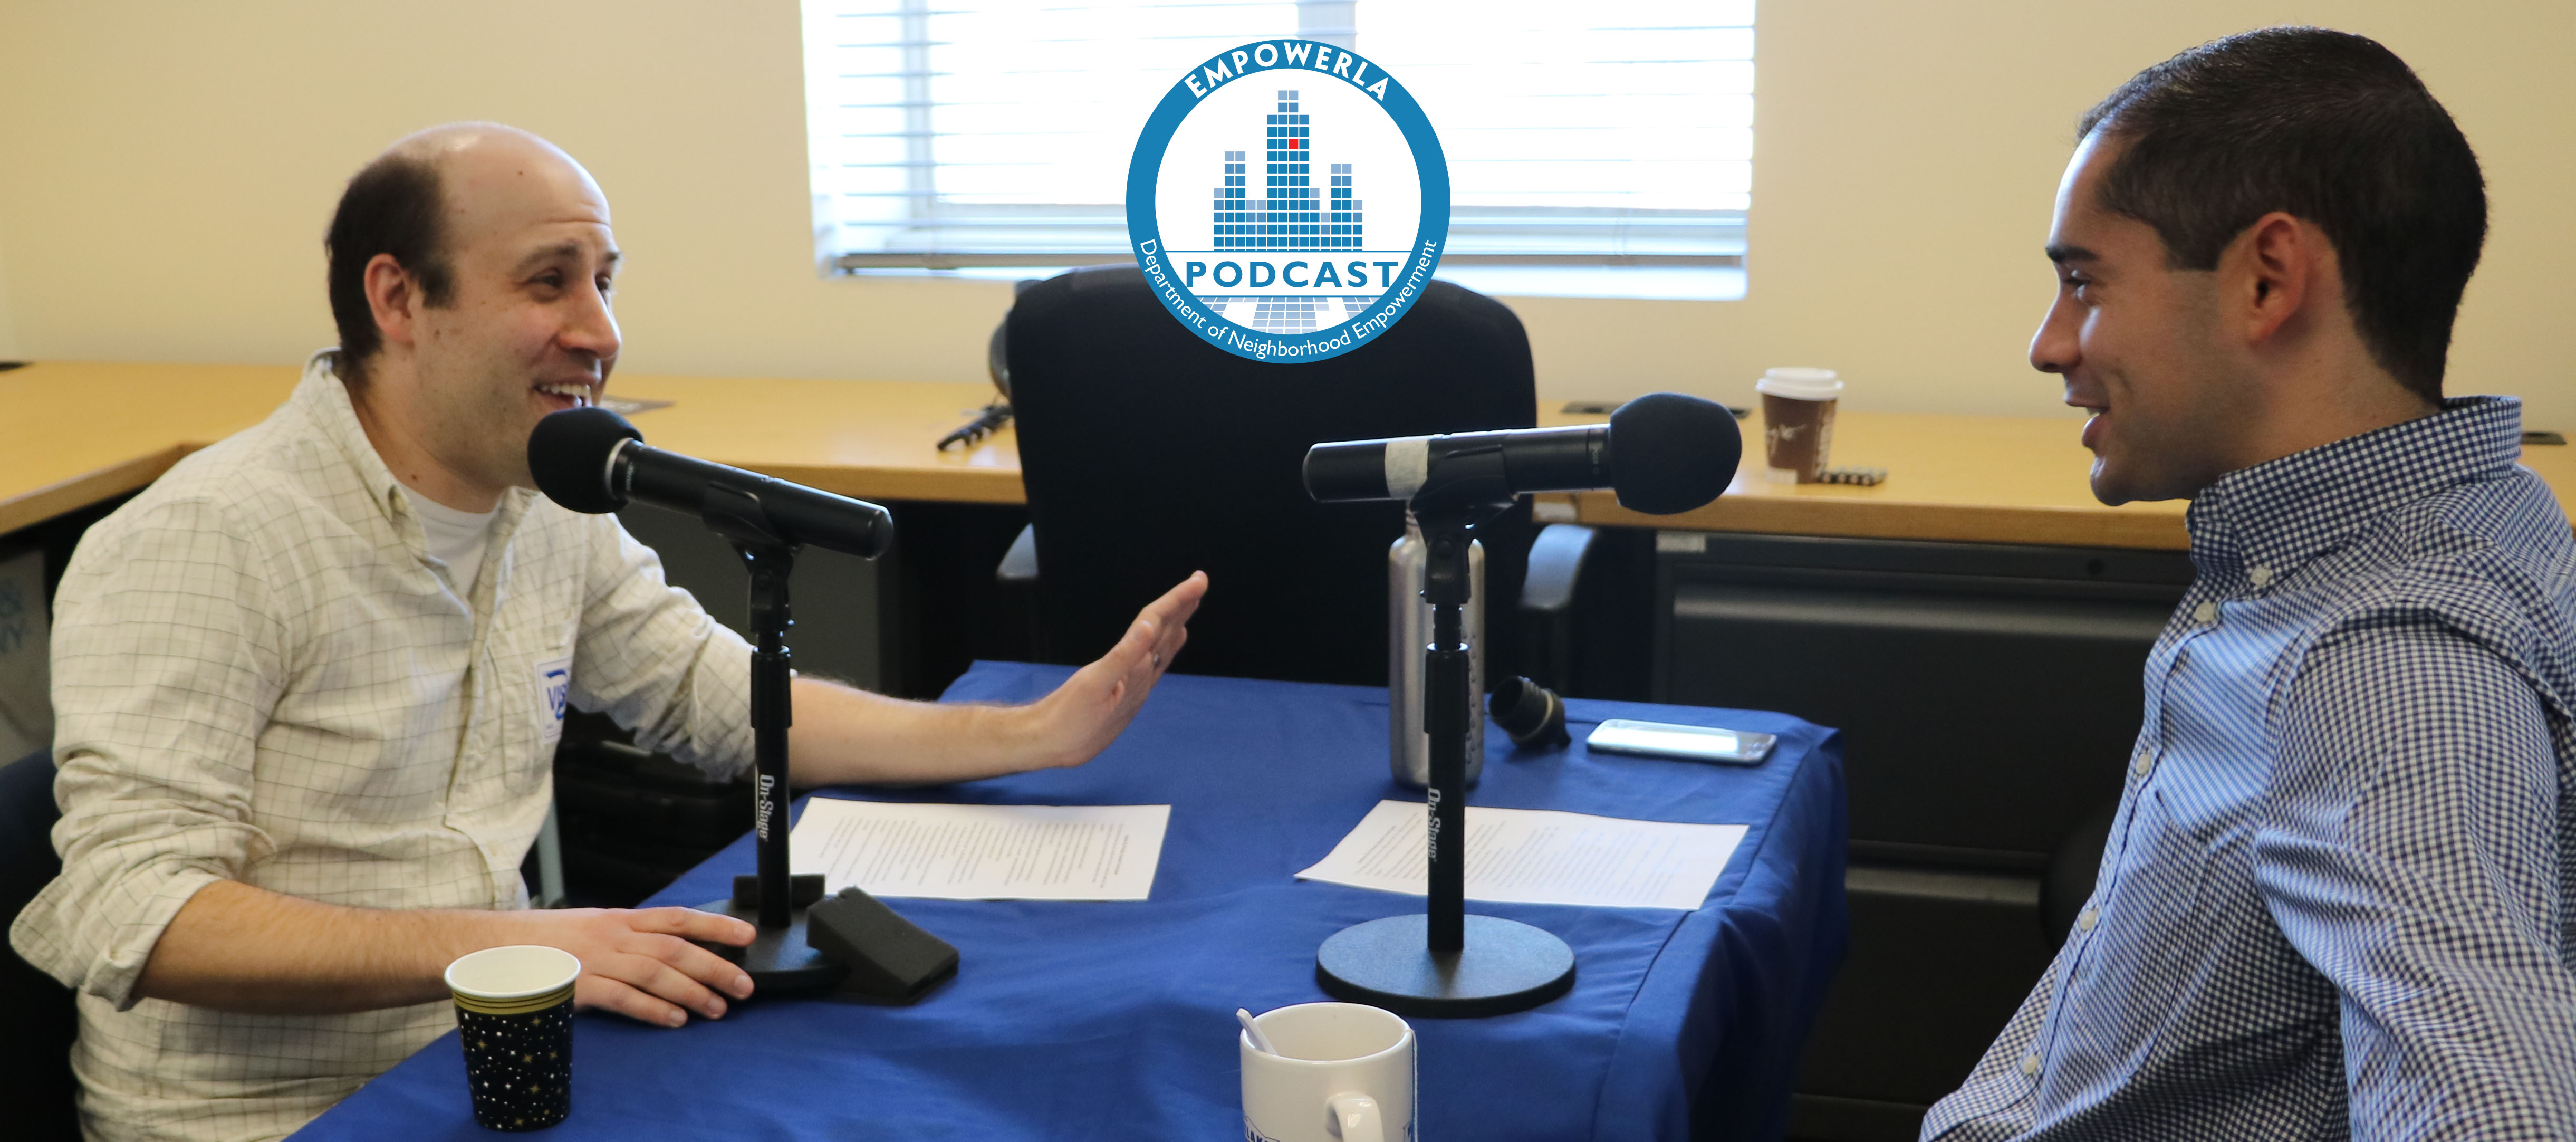 Photo of Scott Epstein being interviewed by Brett Shears during a Podcast